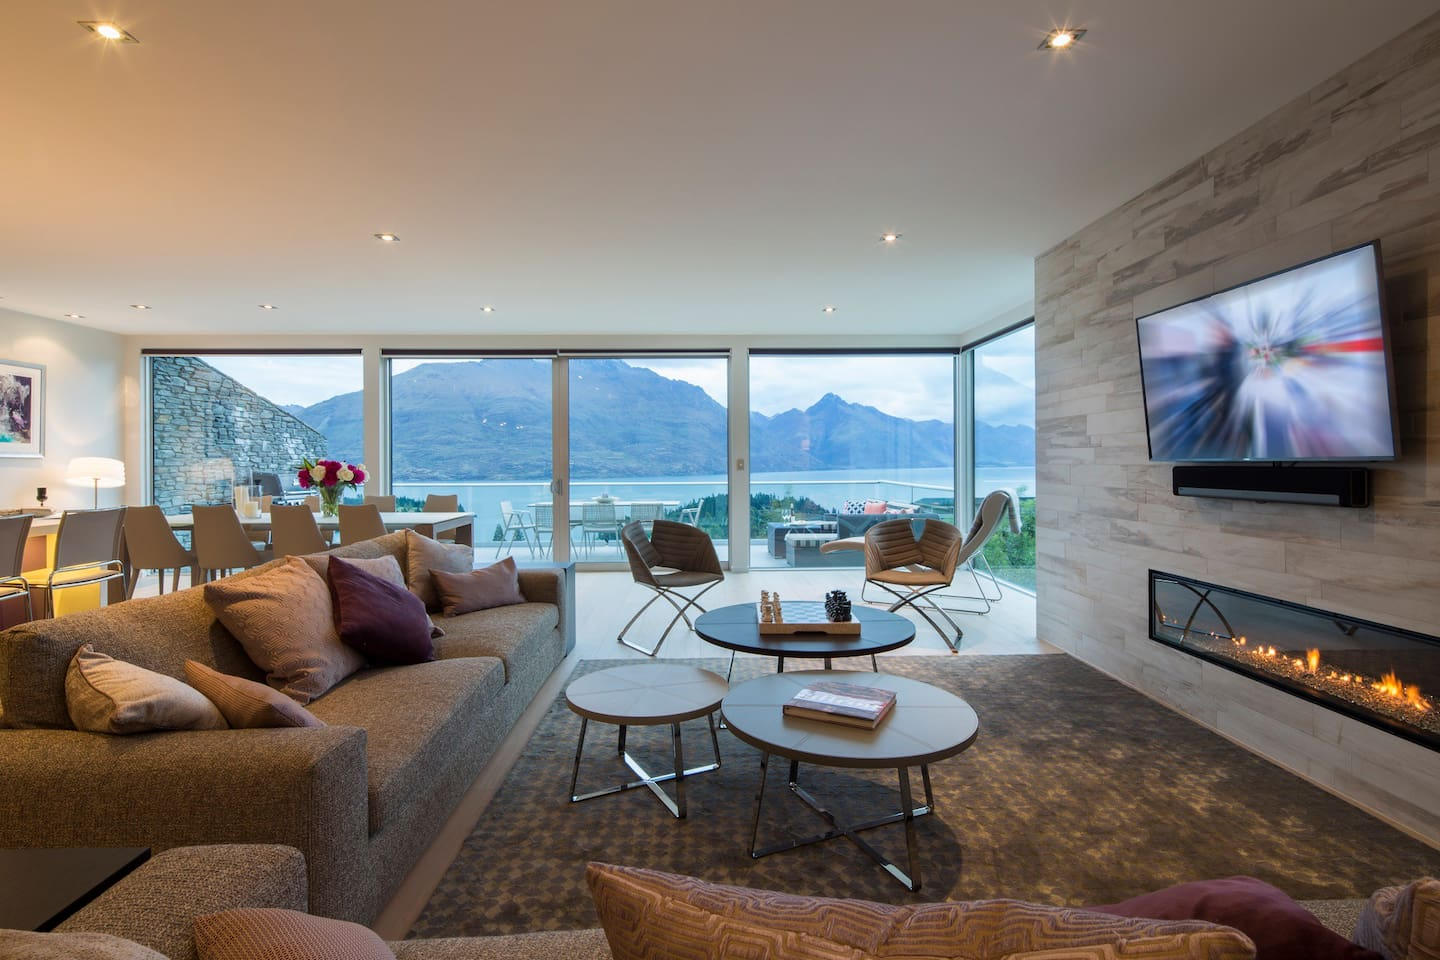 guests will enjoy the SKY TV with Netflix, surround sound and board games